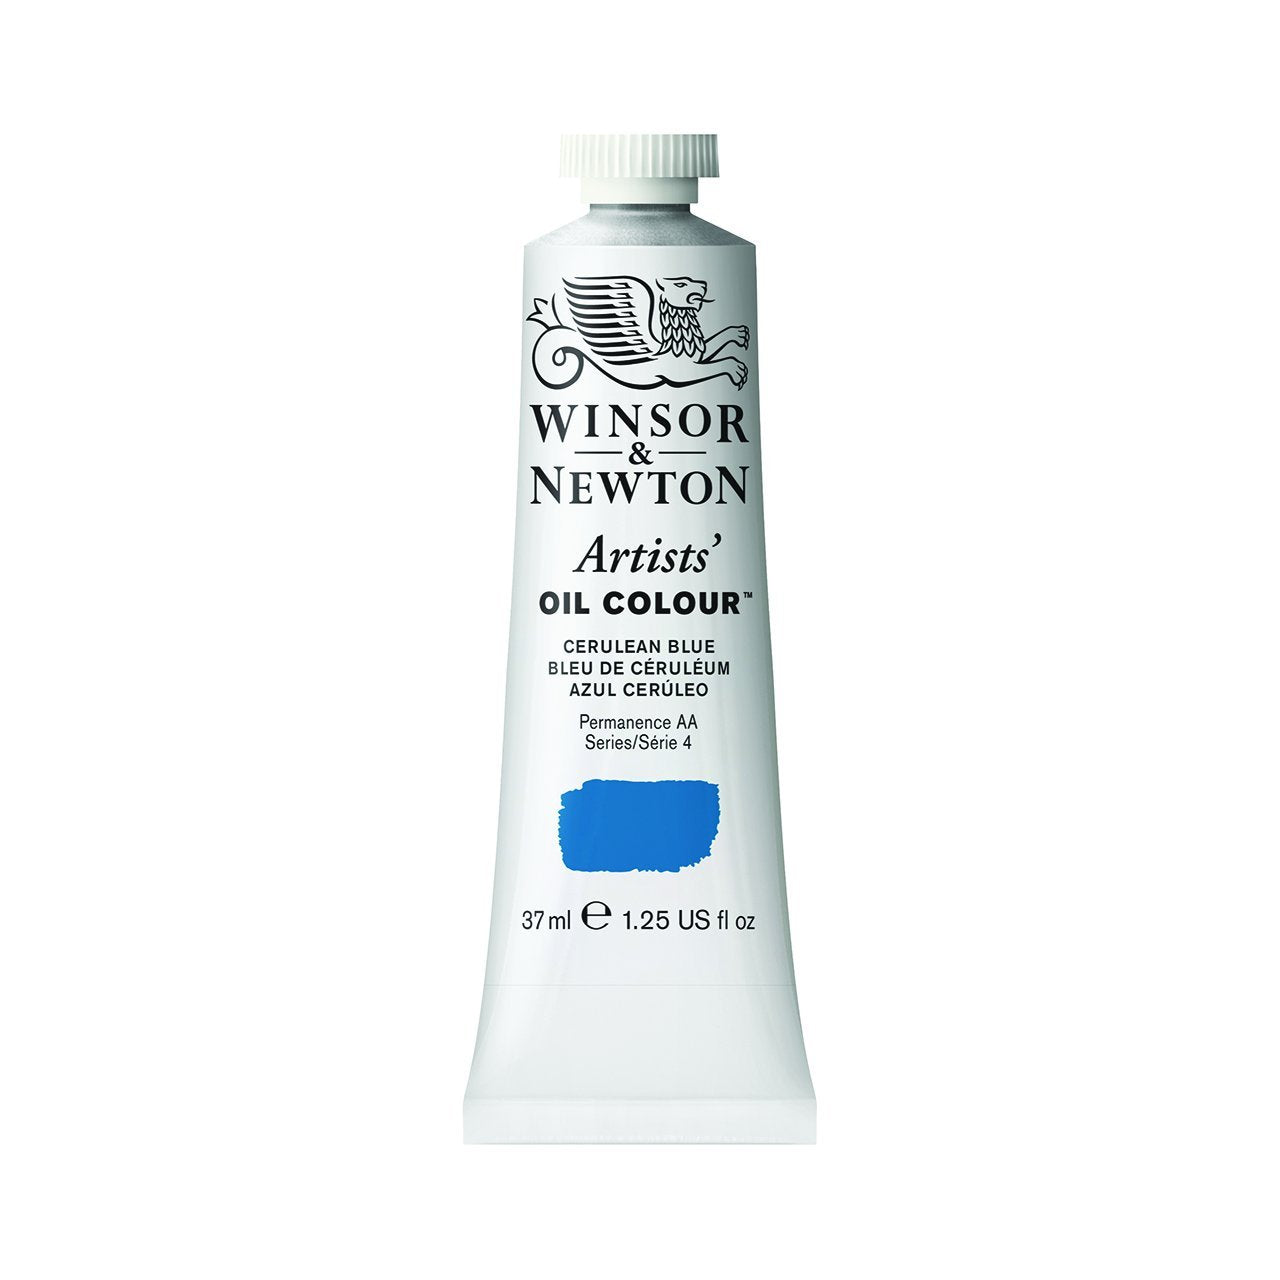 Winsor & Newton Artists Oil Color, 37ml, Cerulean Blue